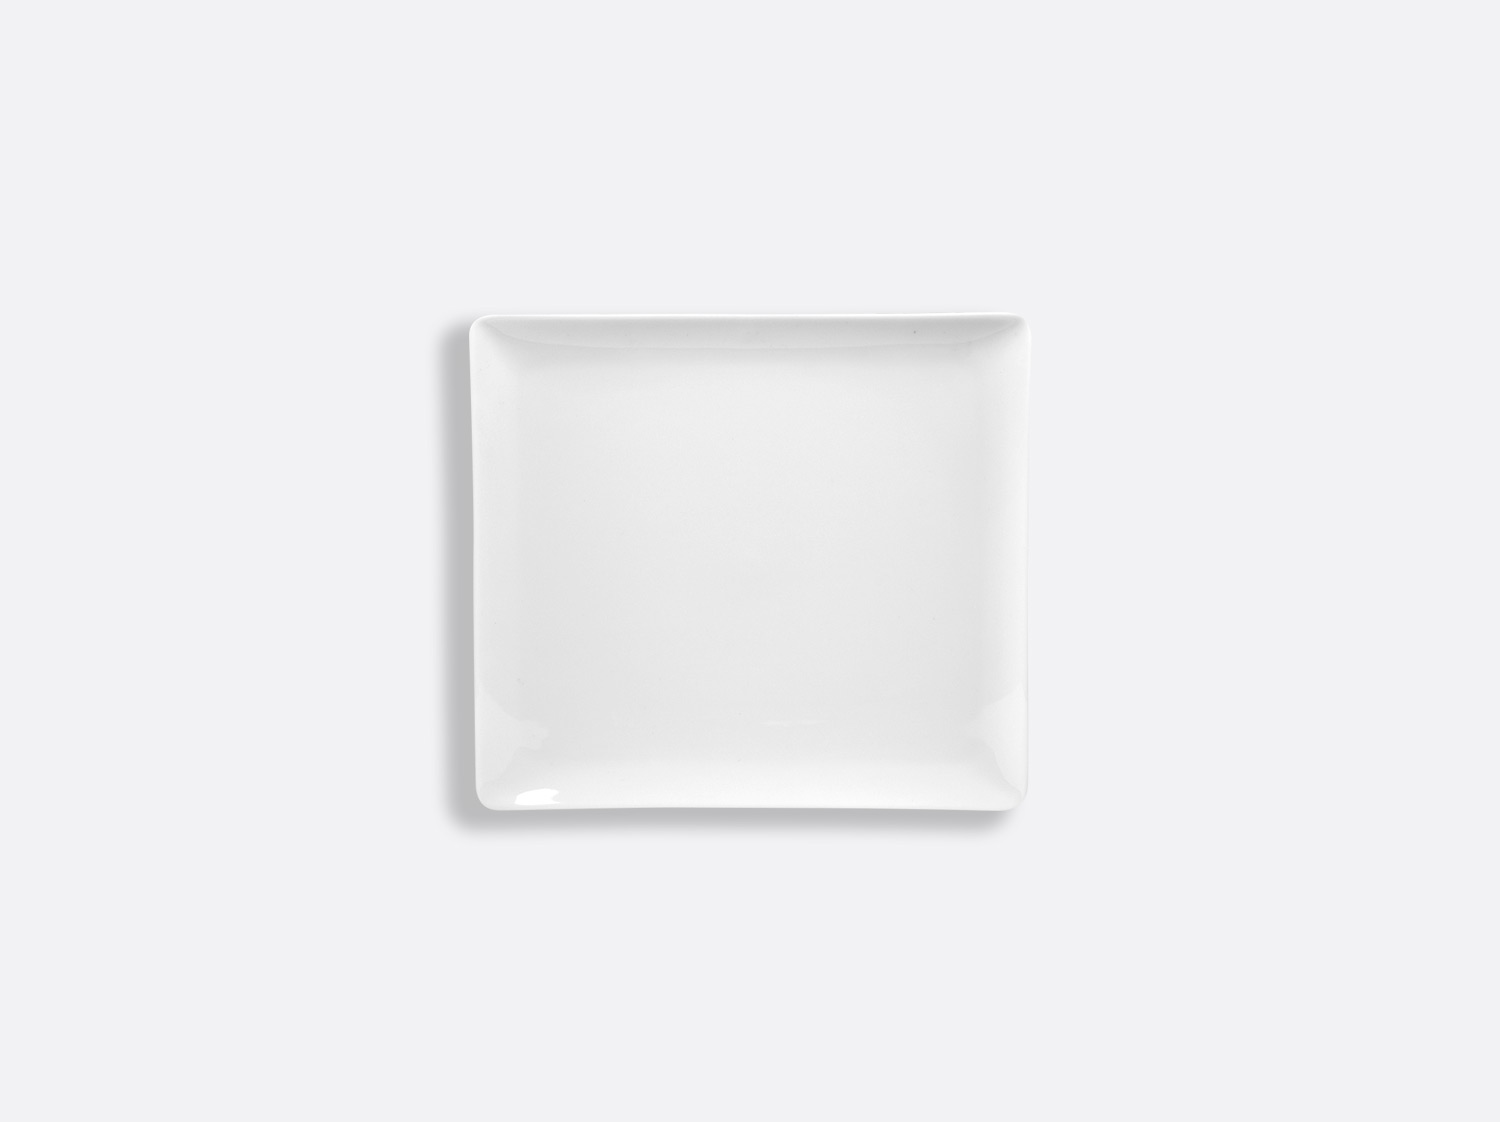 Plateau rectangulaire 12 x 11 cm en porcelaine de la collection FANTAISIES BLANCHES Bernardaud